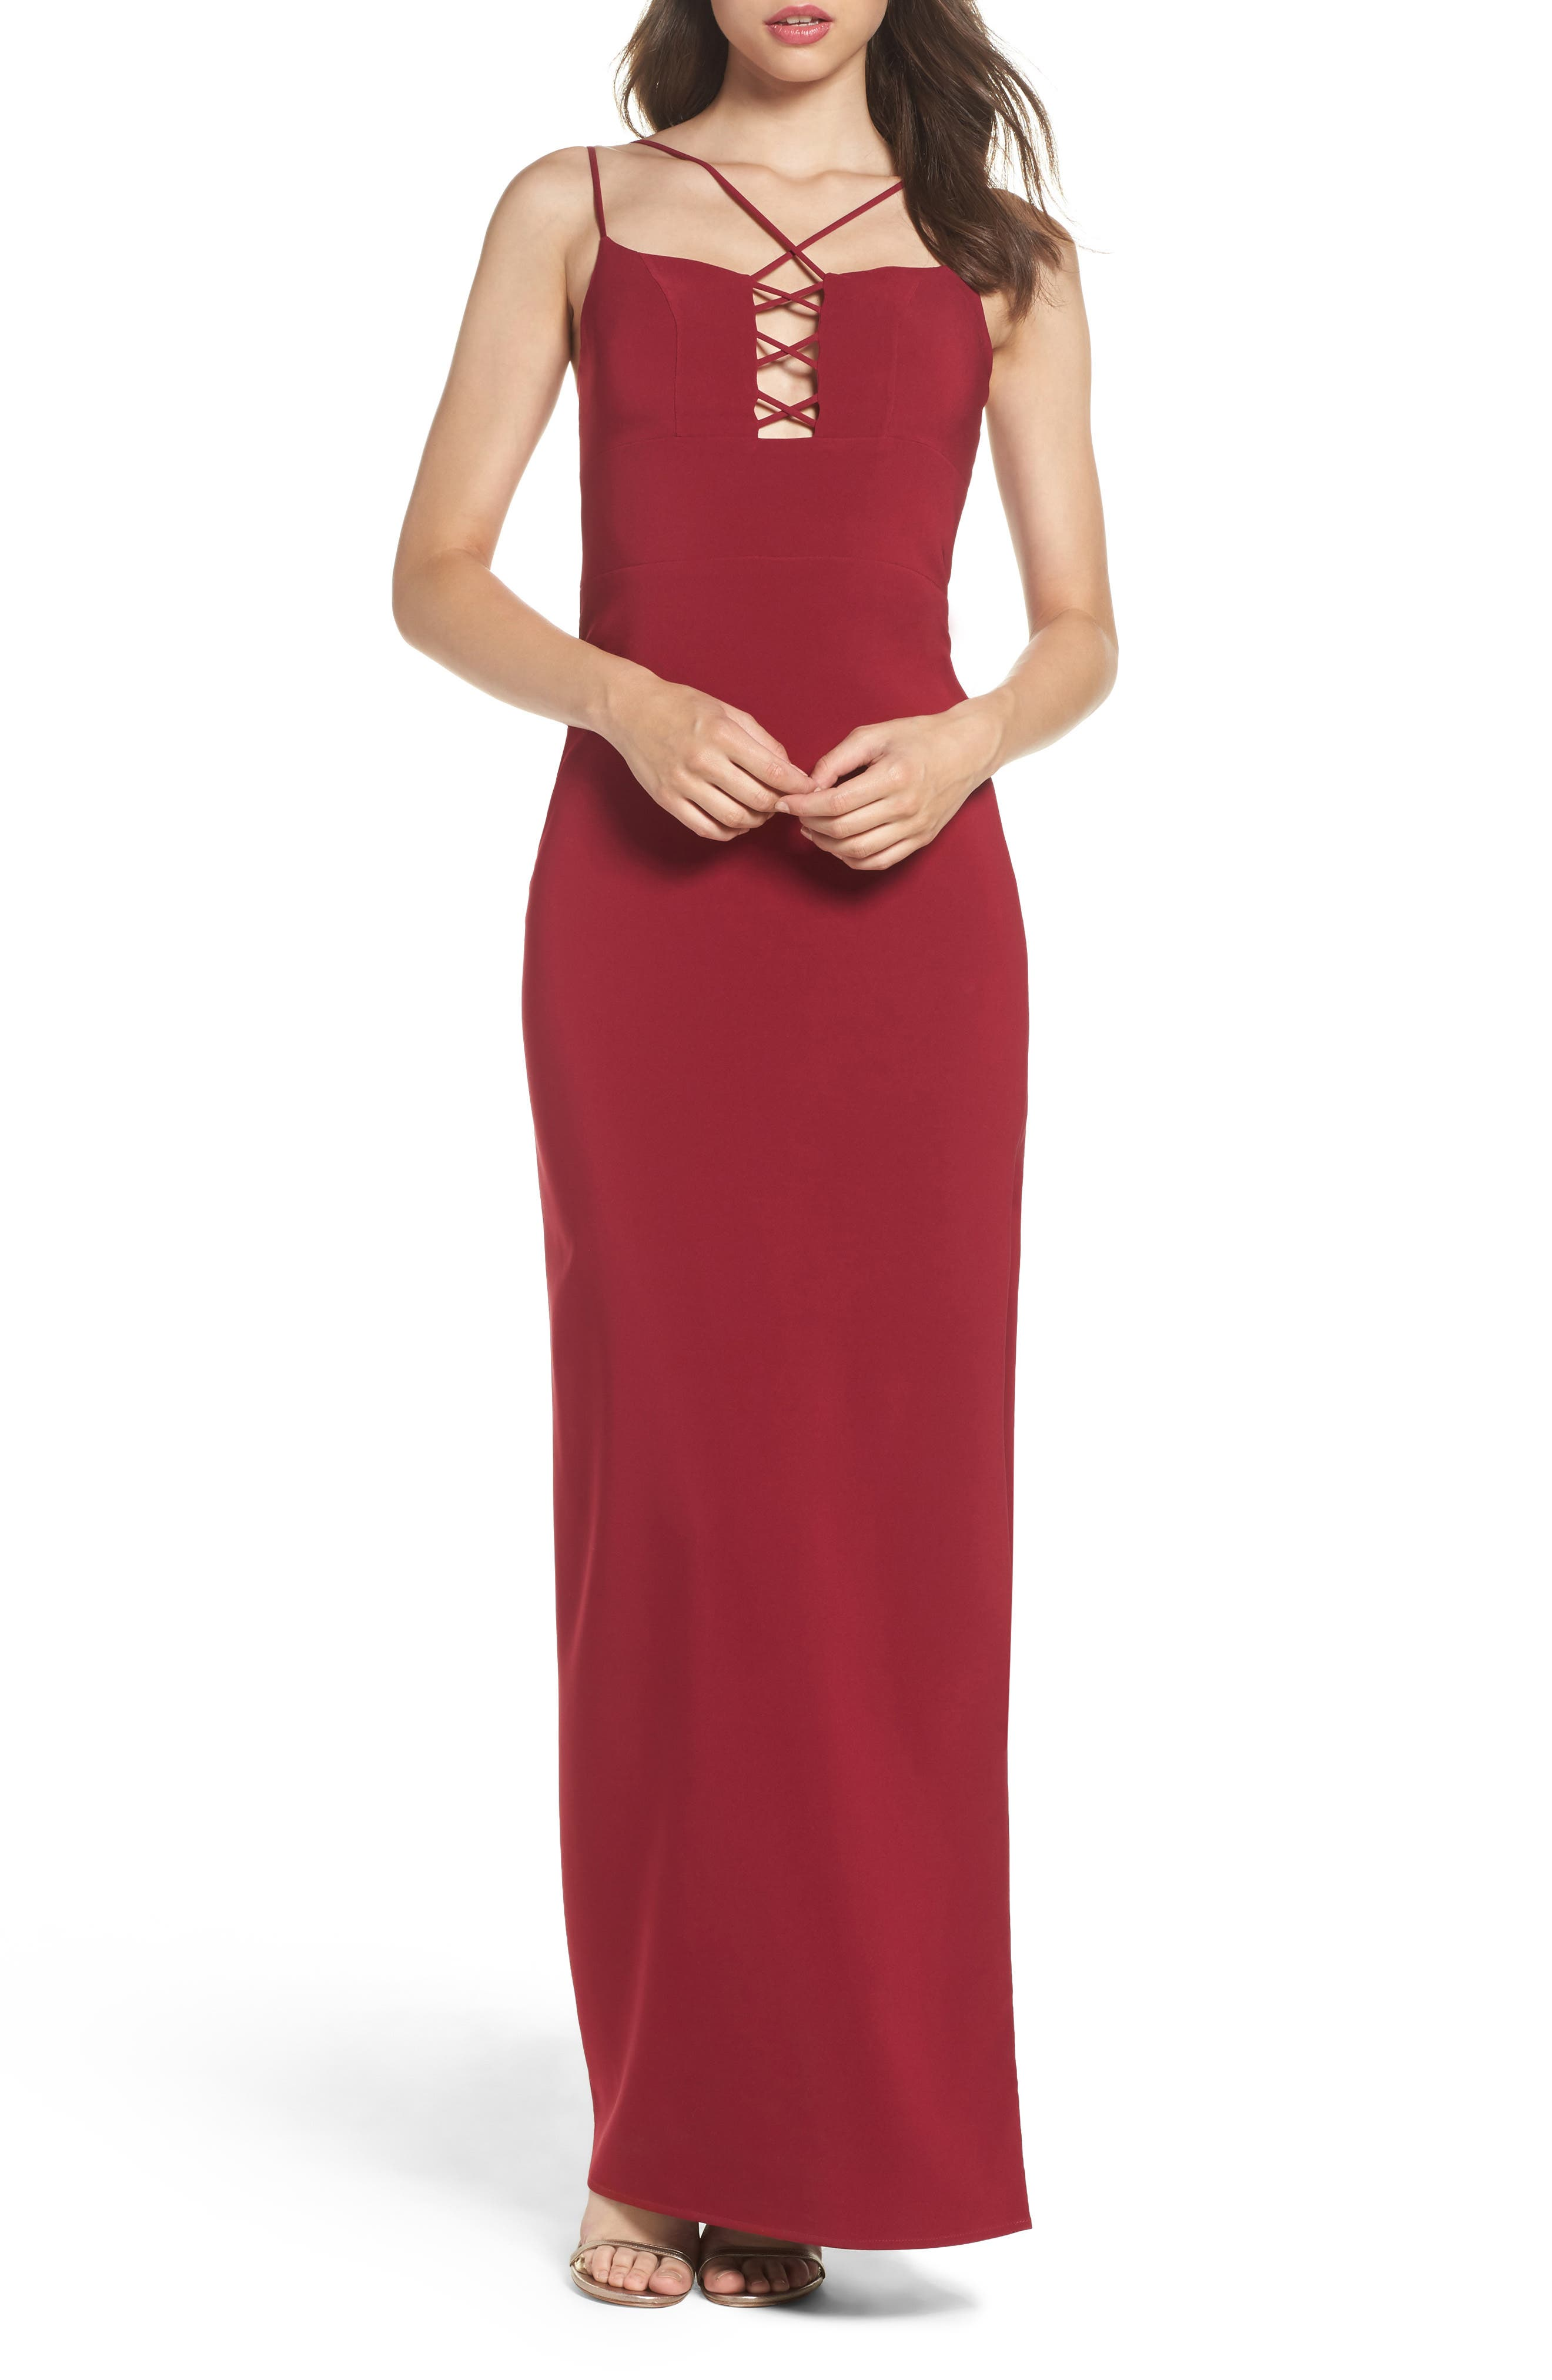 Starlett Gown,                         Main,                         color, 935